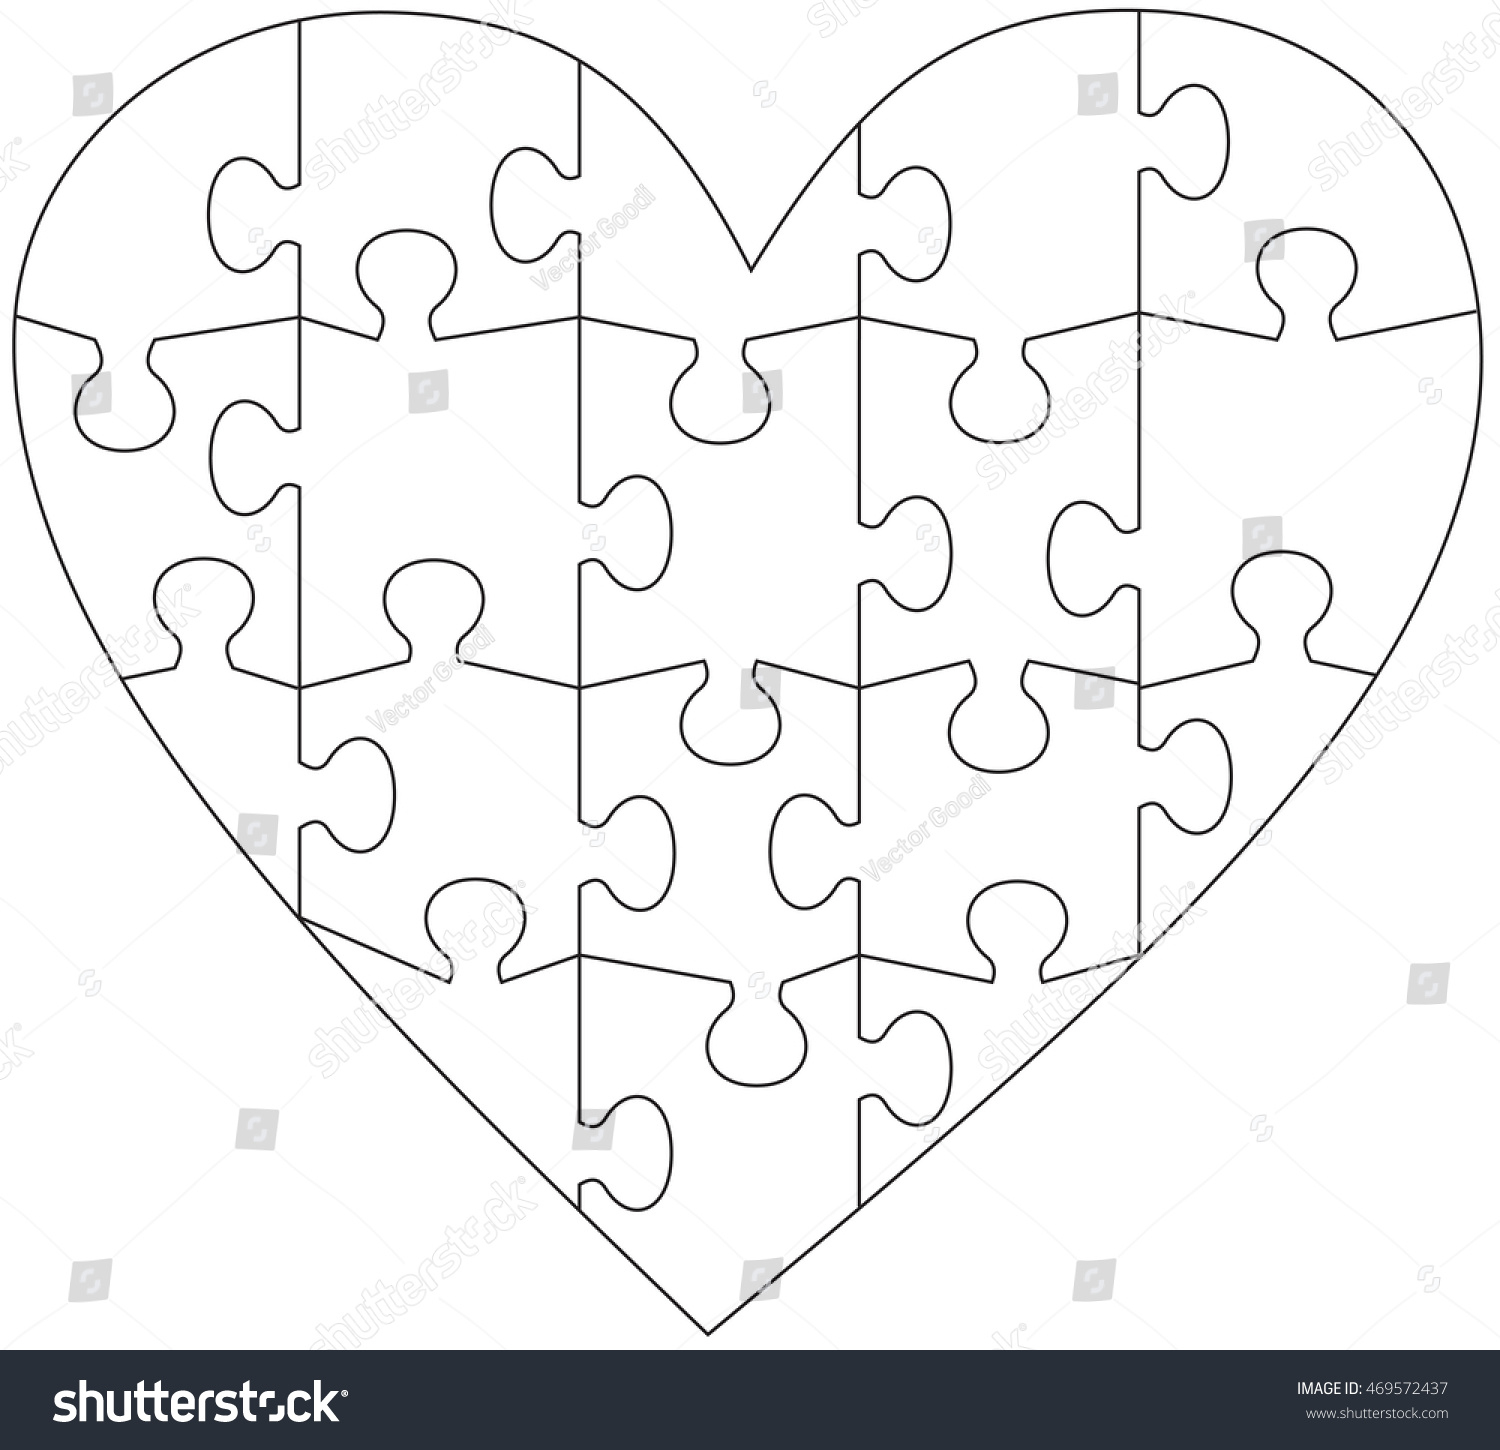 26 Images Of Compound Word Puzzle Heart Template | Unemeuf - Printable Heart Puzzles